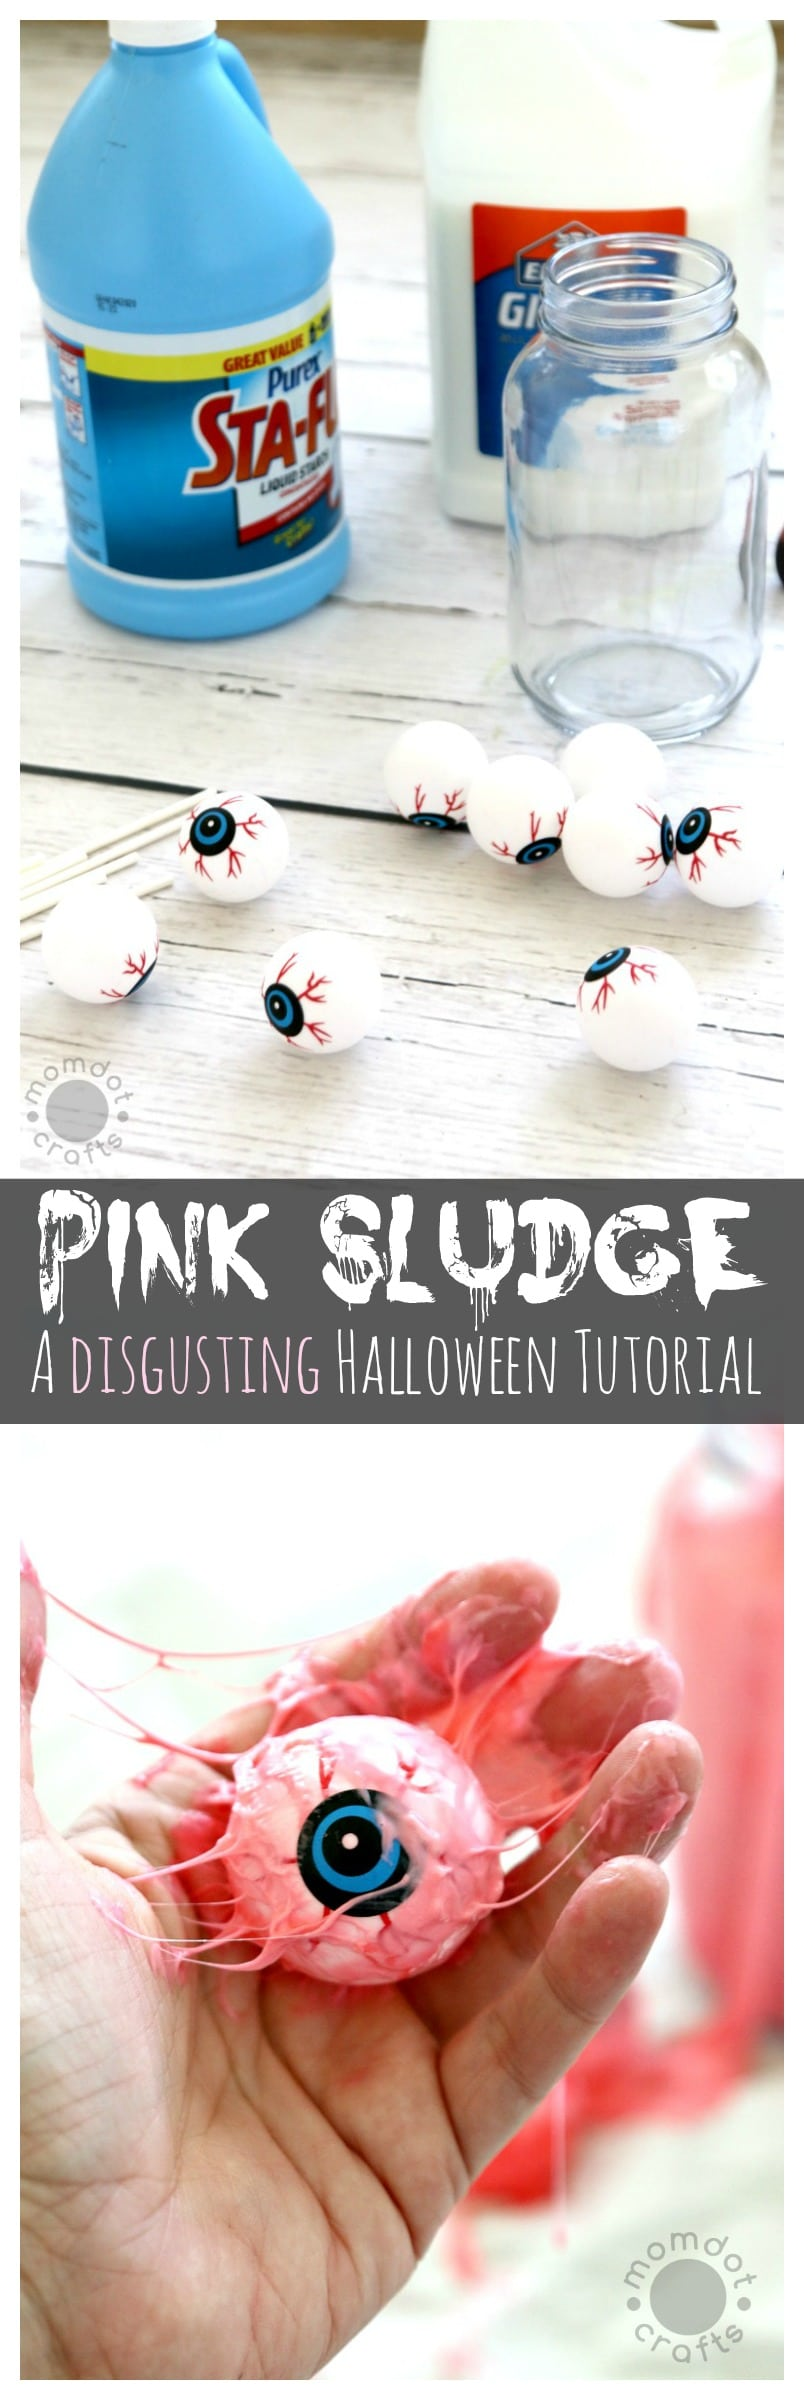 Pink Sludge: DIY Disgusting Eyeball Slime to help you make disgusting decor, gross out your friends and kids, Halloween Tutorial you must do! Inspired by Ghostbusters Slime River